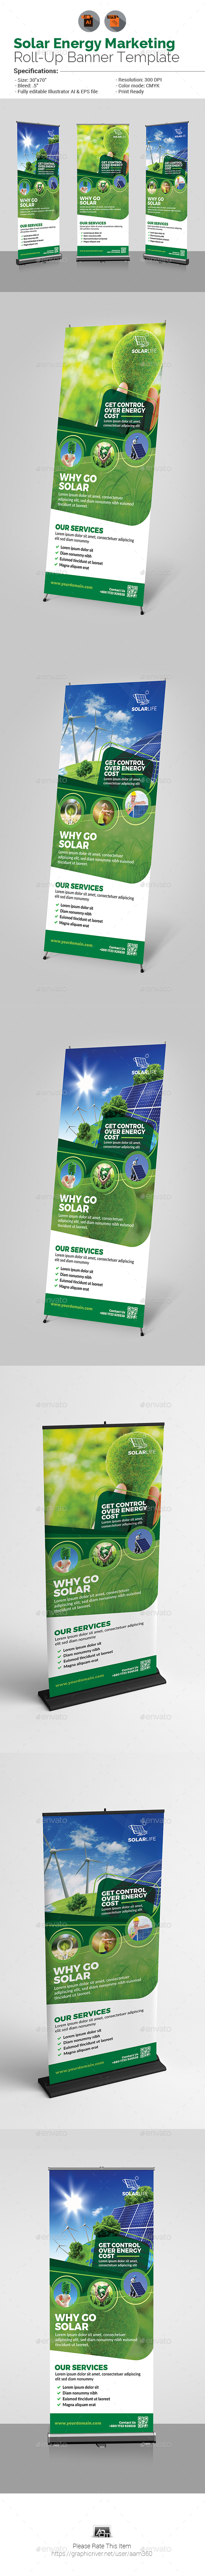 Solar Energy Roll-Up Banner - Signage Print Templates